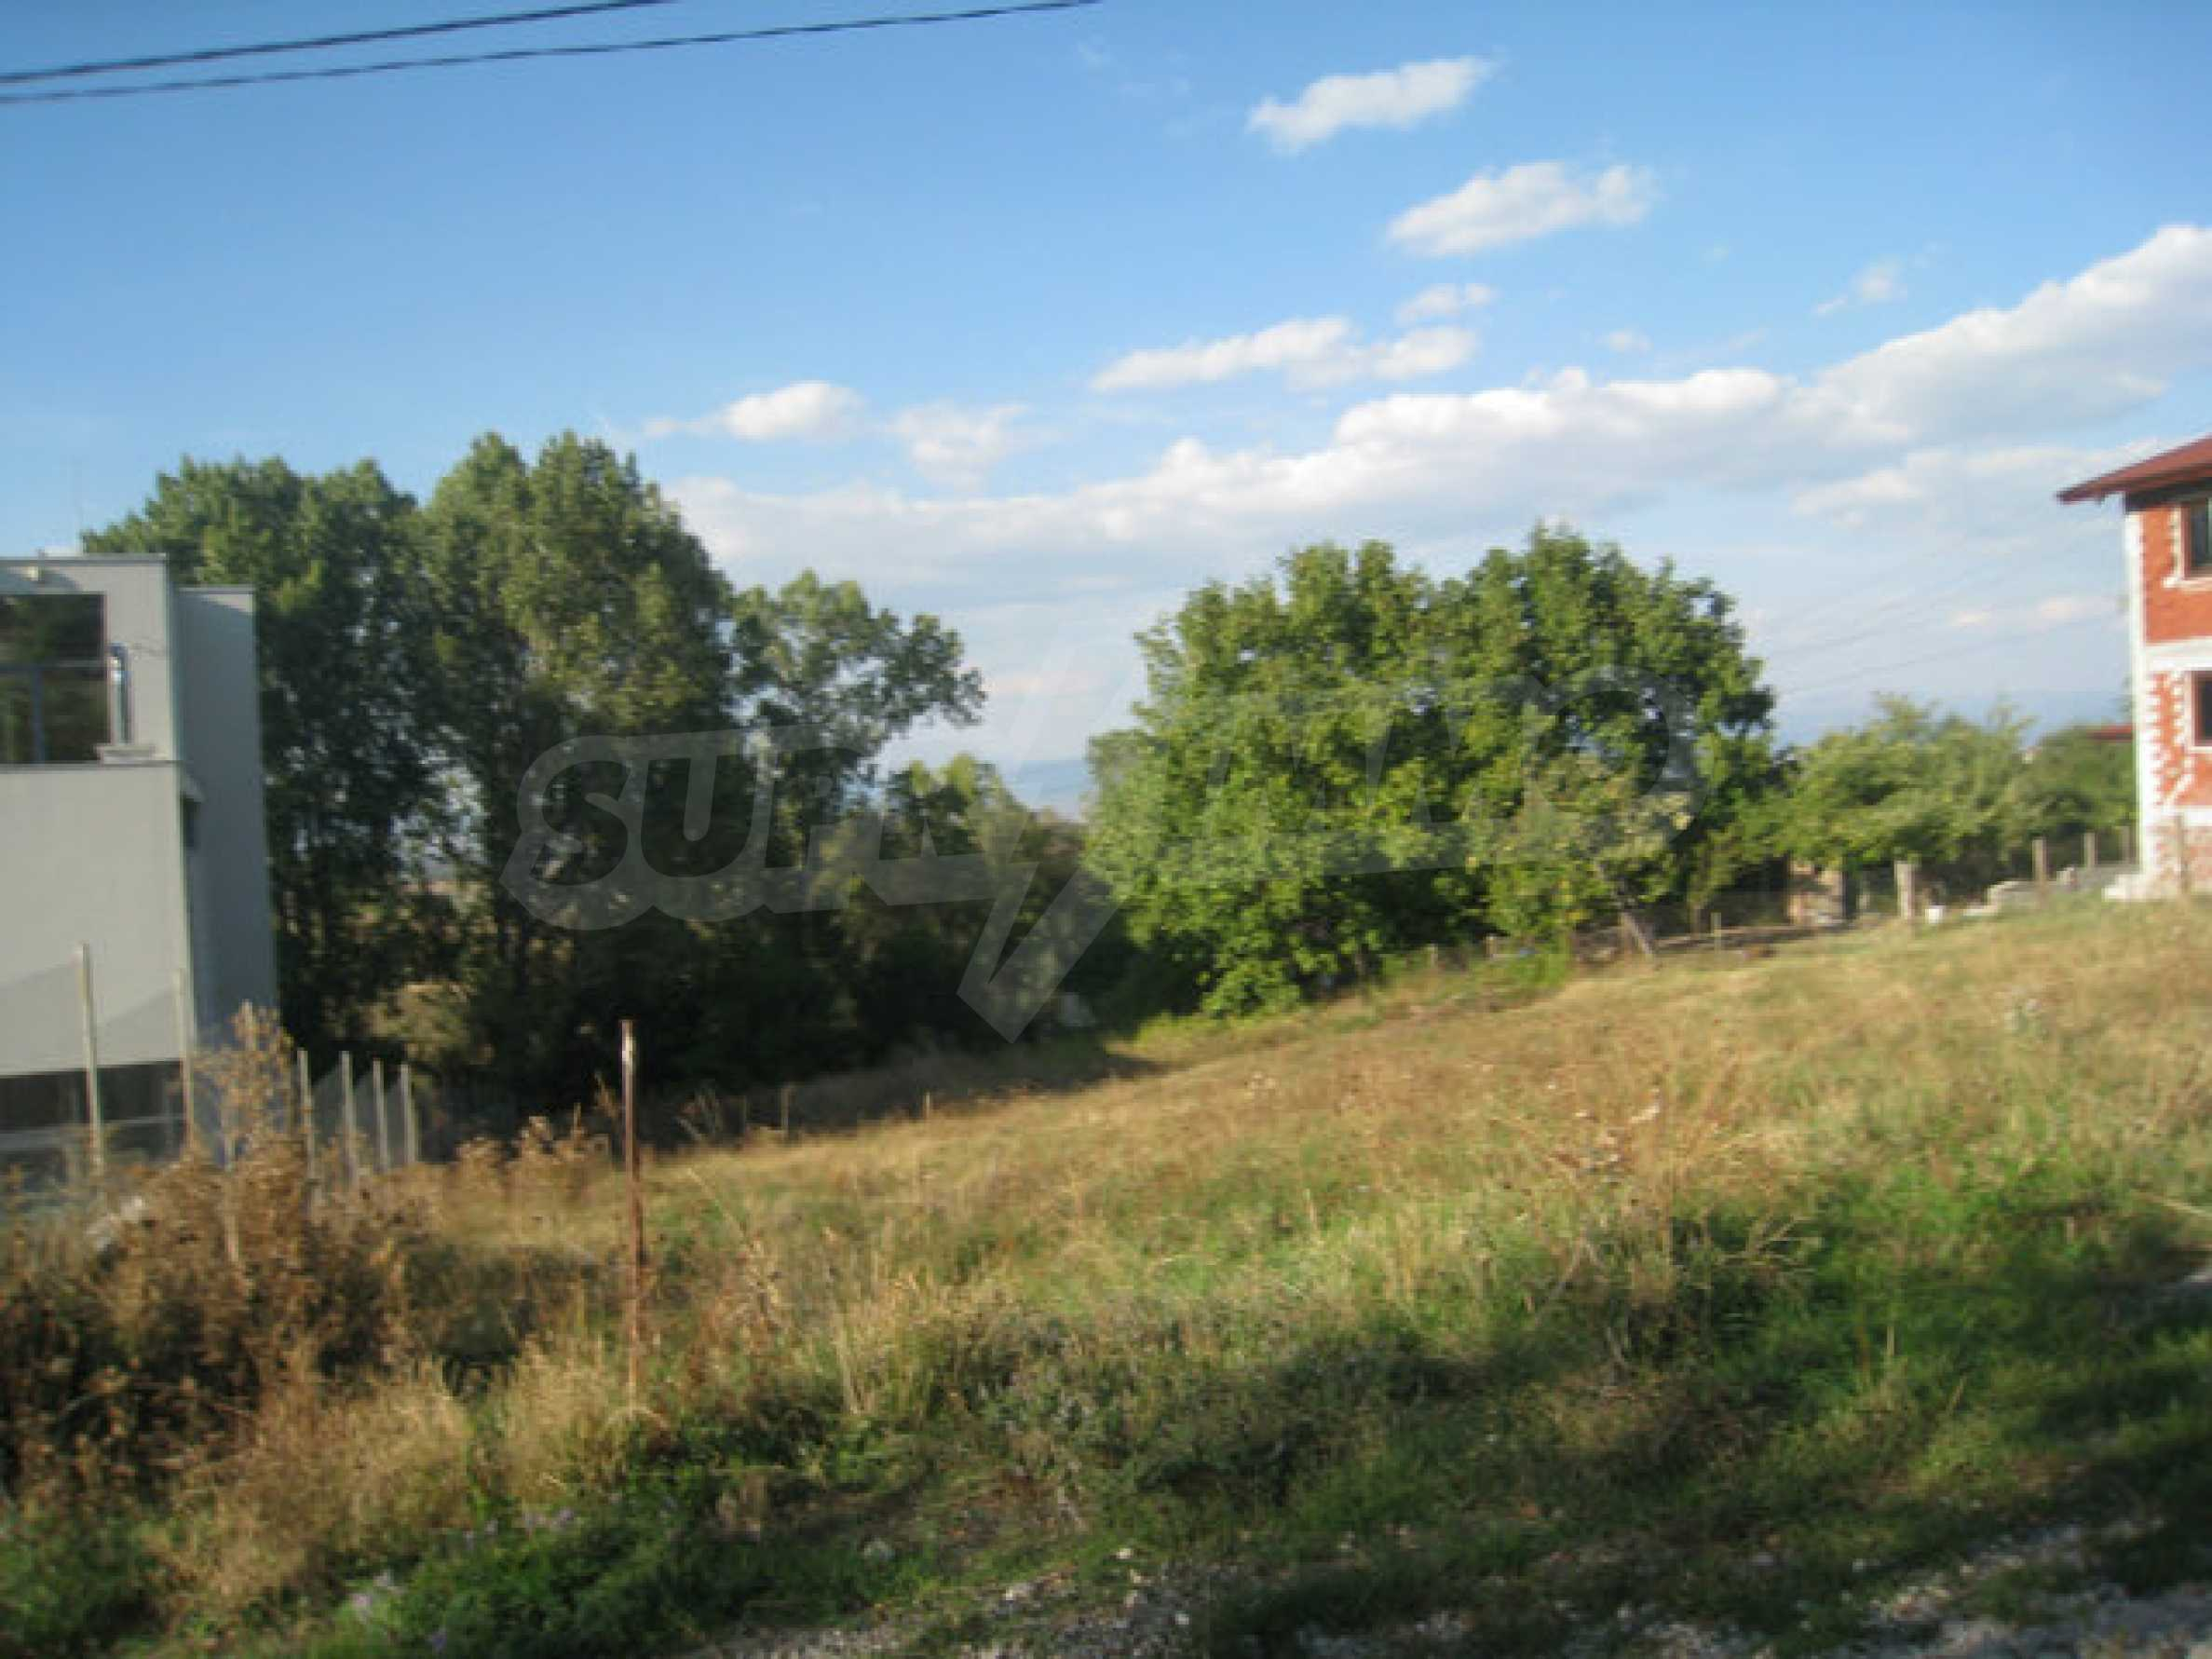 Regulated plot of land for rural private house or villa near Sofia